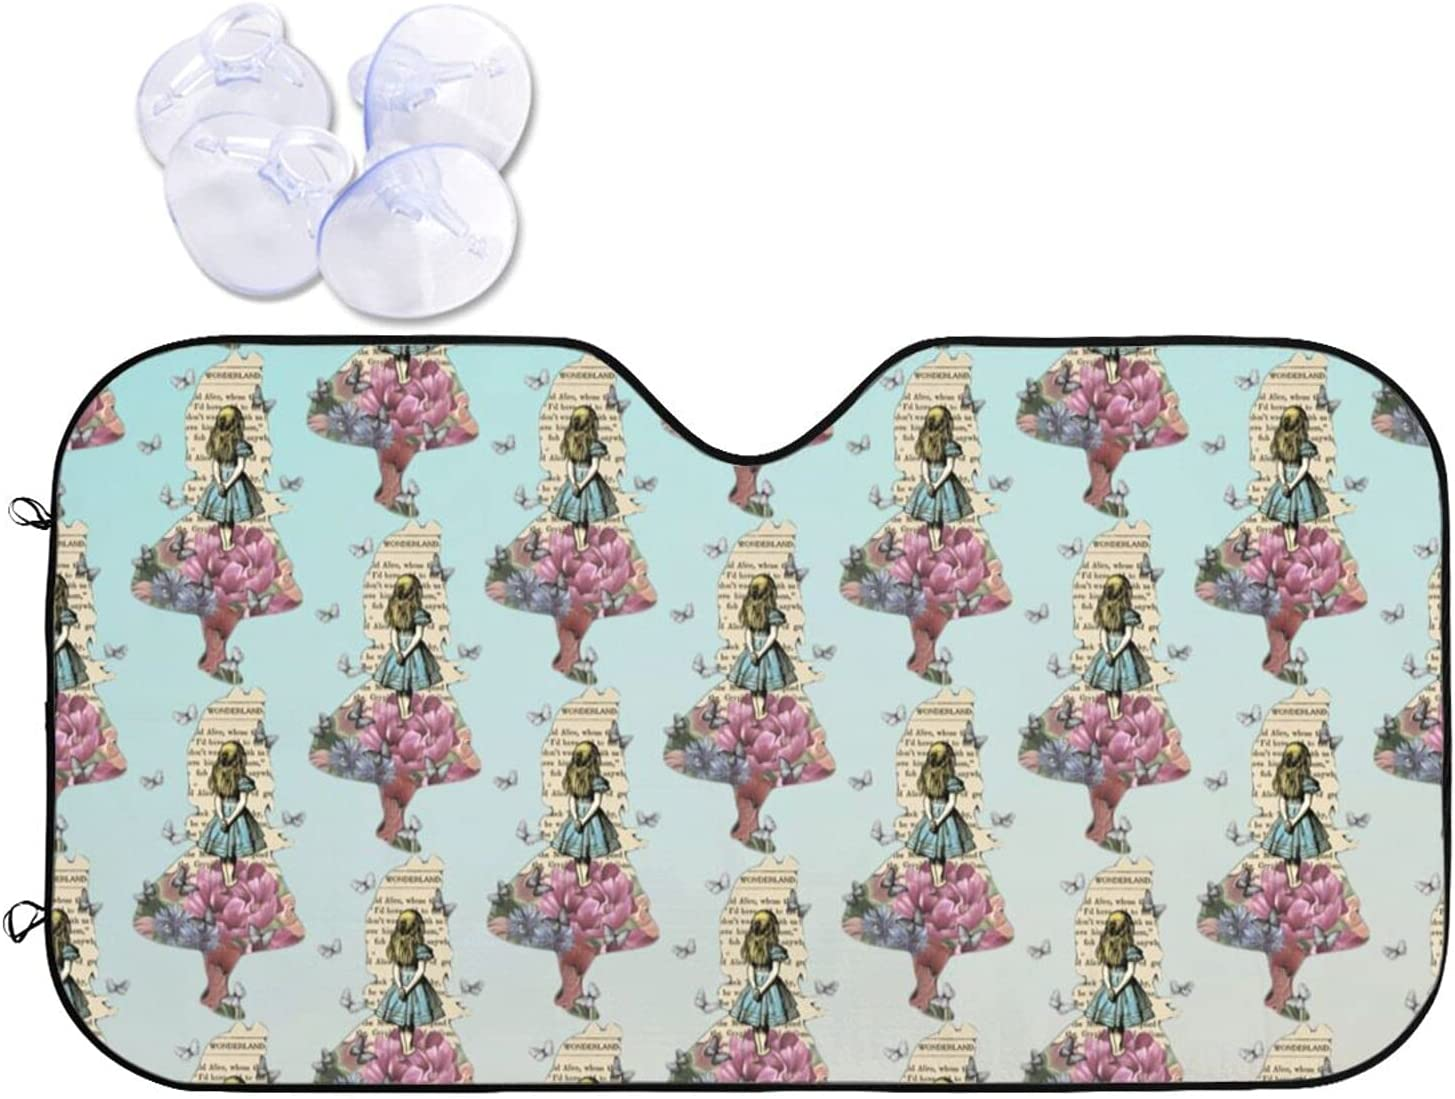 Alice in Wonderland Factory outlet The Front Sunshade of Car Fresno Mall Cur Windshield